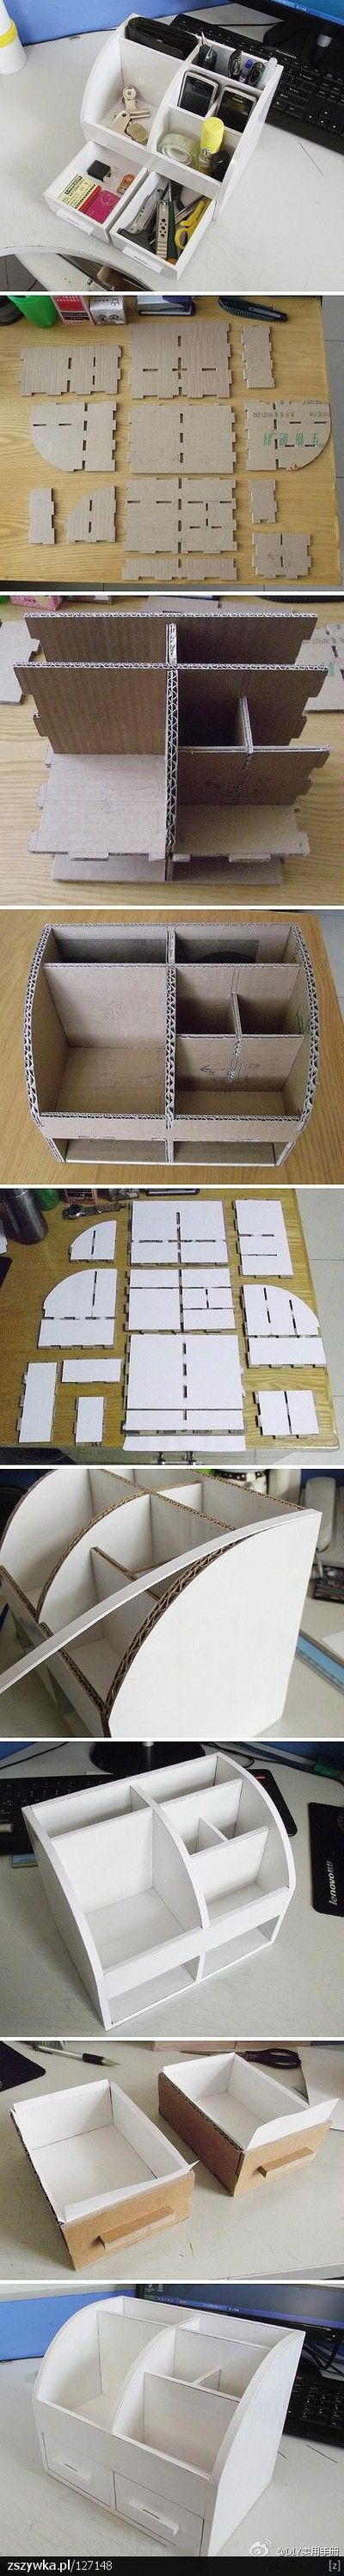 Office organizer from cardboard